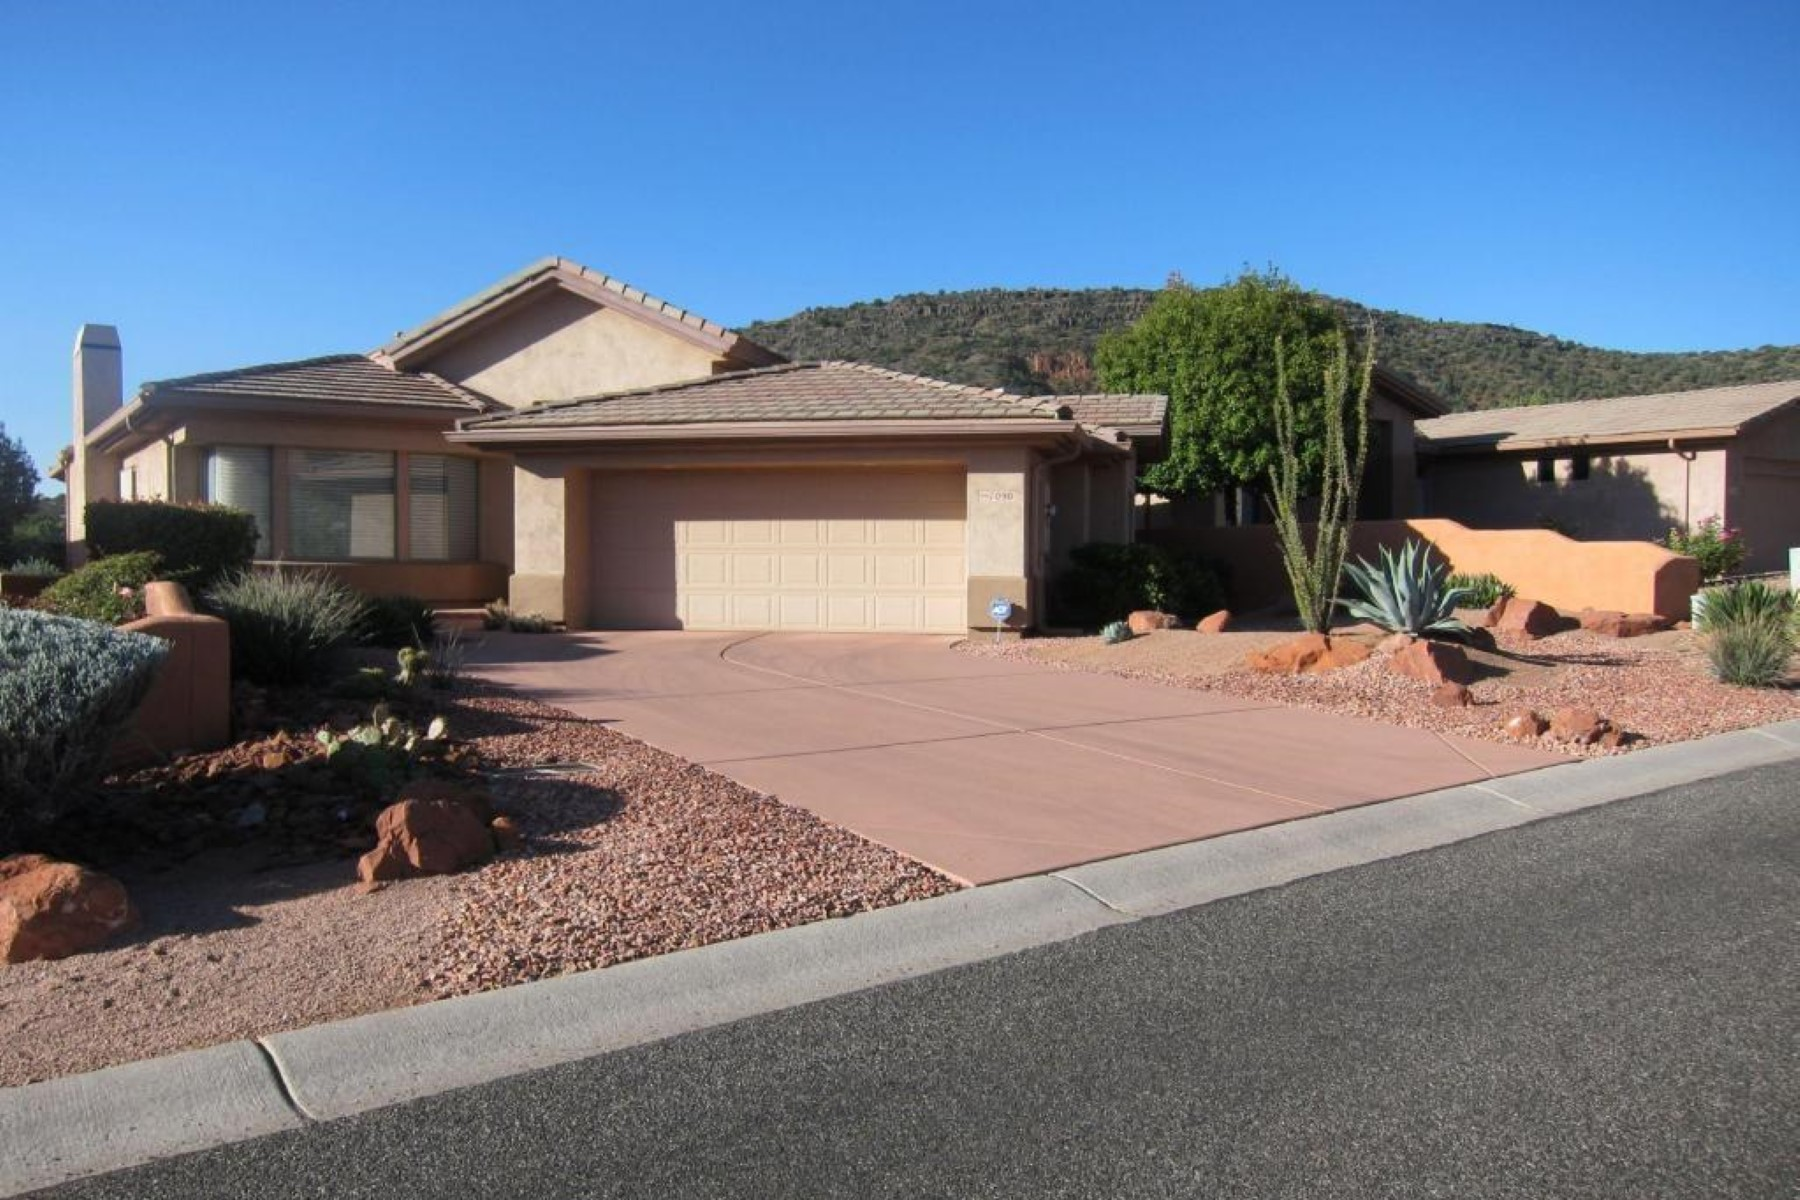 Single Family Home for Sale at Immaculate Home in Pristine Condition 1090 Crown Ridge Rd, Sedona, Arizona, 86351 United States